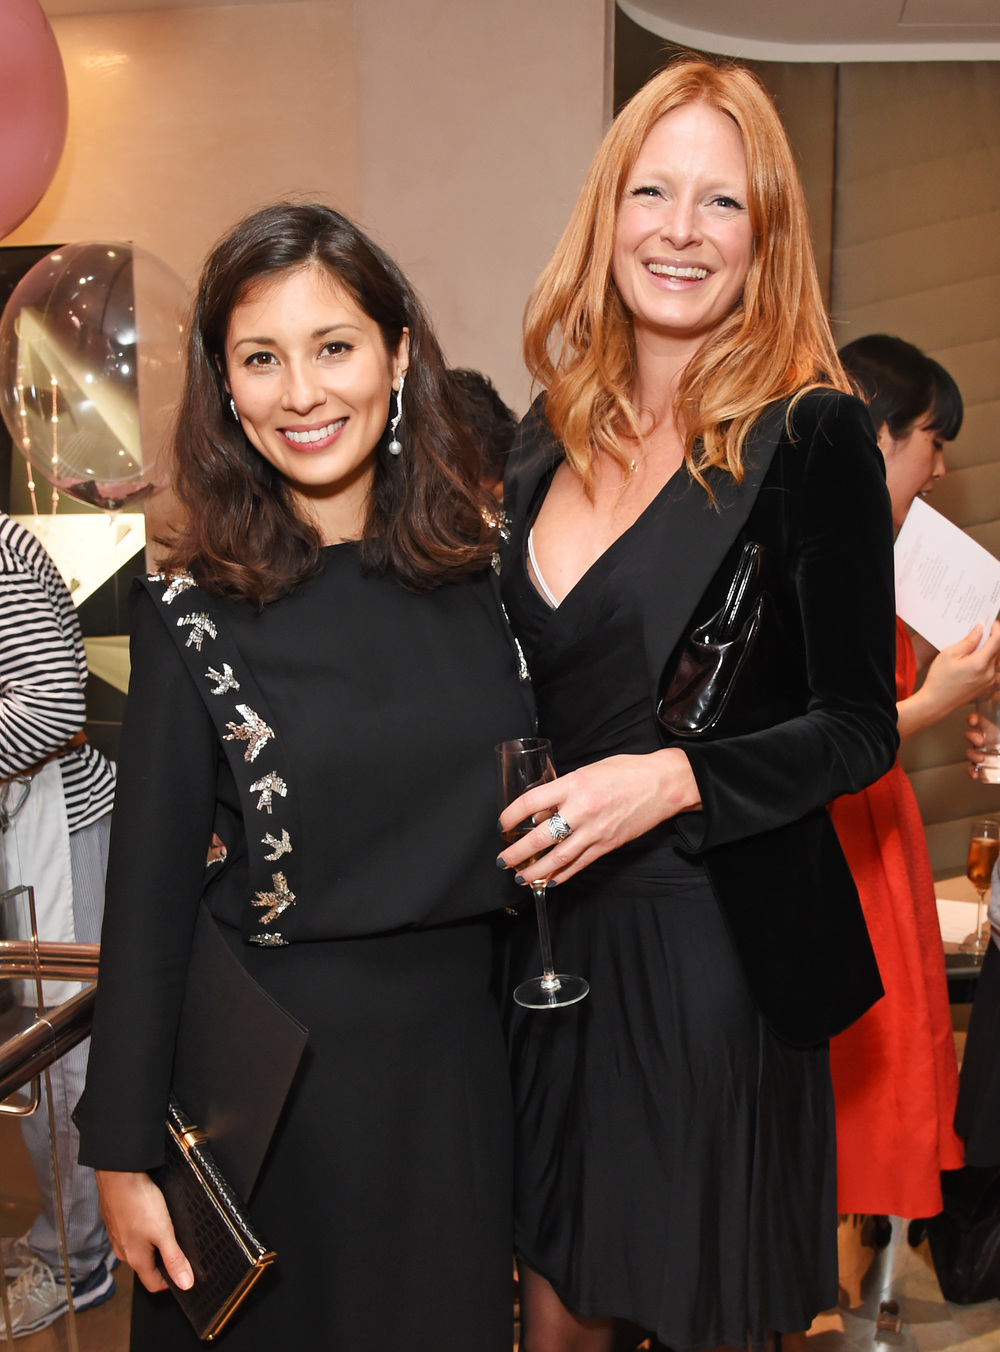 DMB-BOODLES_LONDON_FLAGSHIP_LAUNCH029.JPG